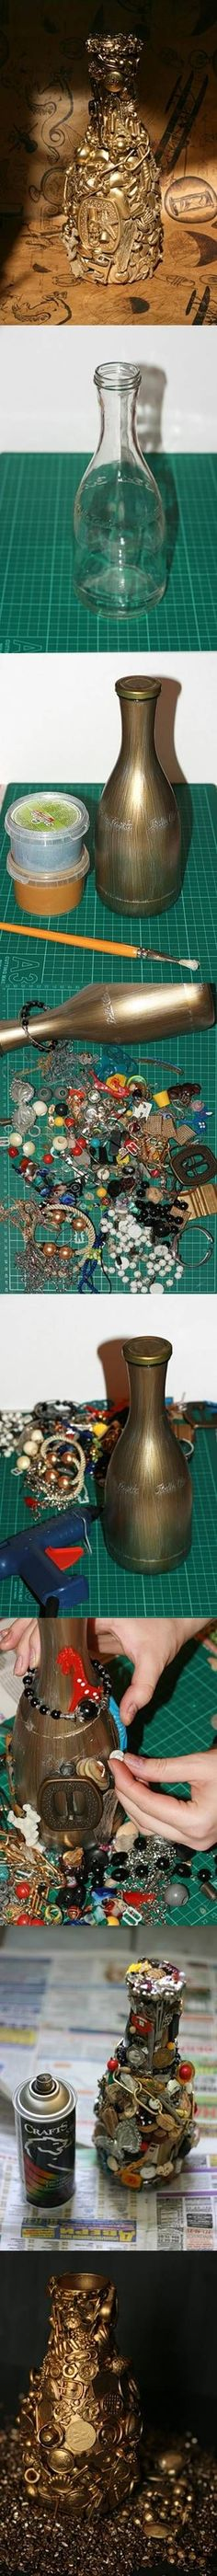 DIY Unwanted Things Decorated Bottle DIY Projects | UsefulDIY.com Follow Us on Facebook ==> http://www.facebook.com/UsefulDiy